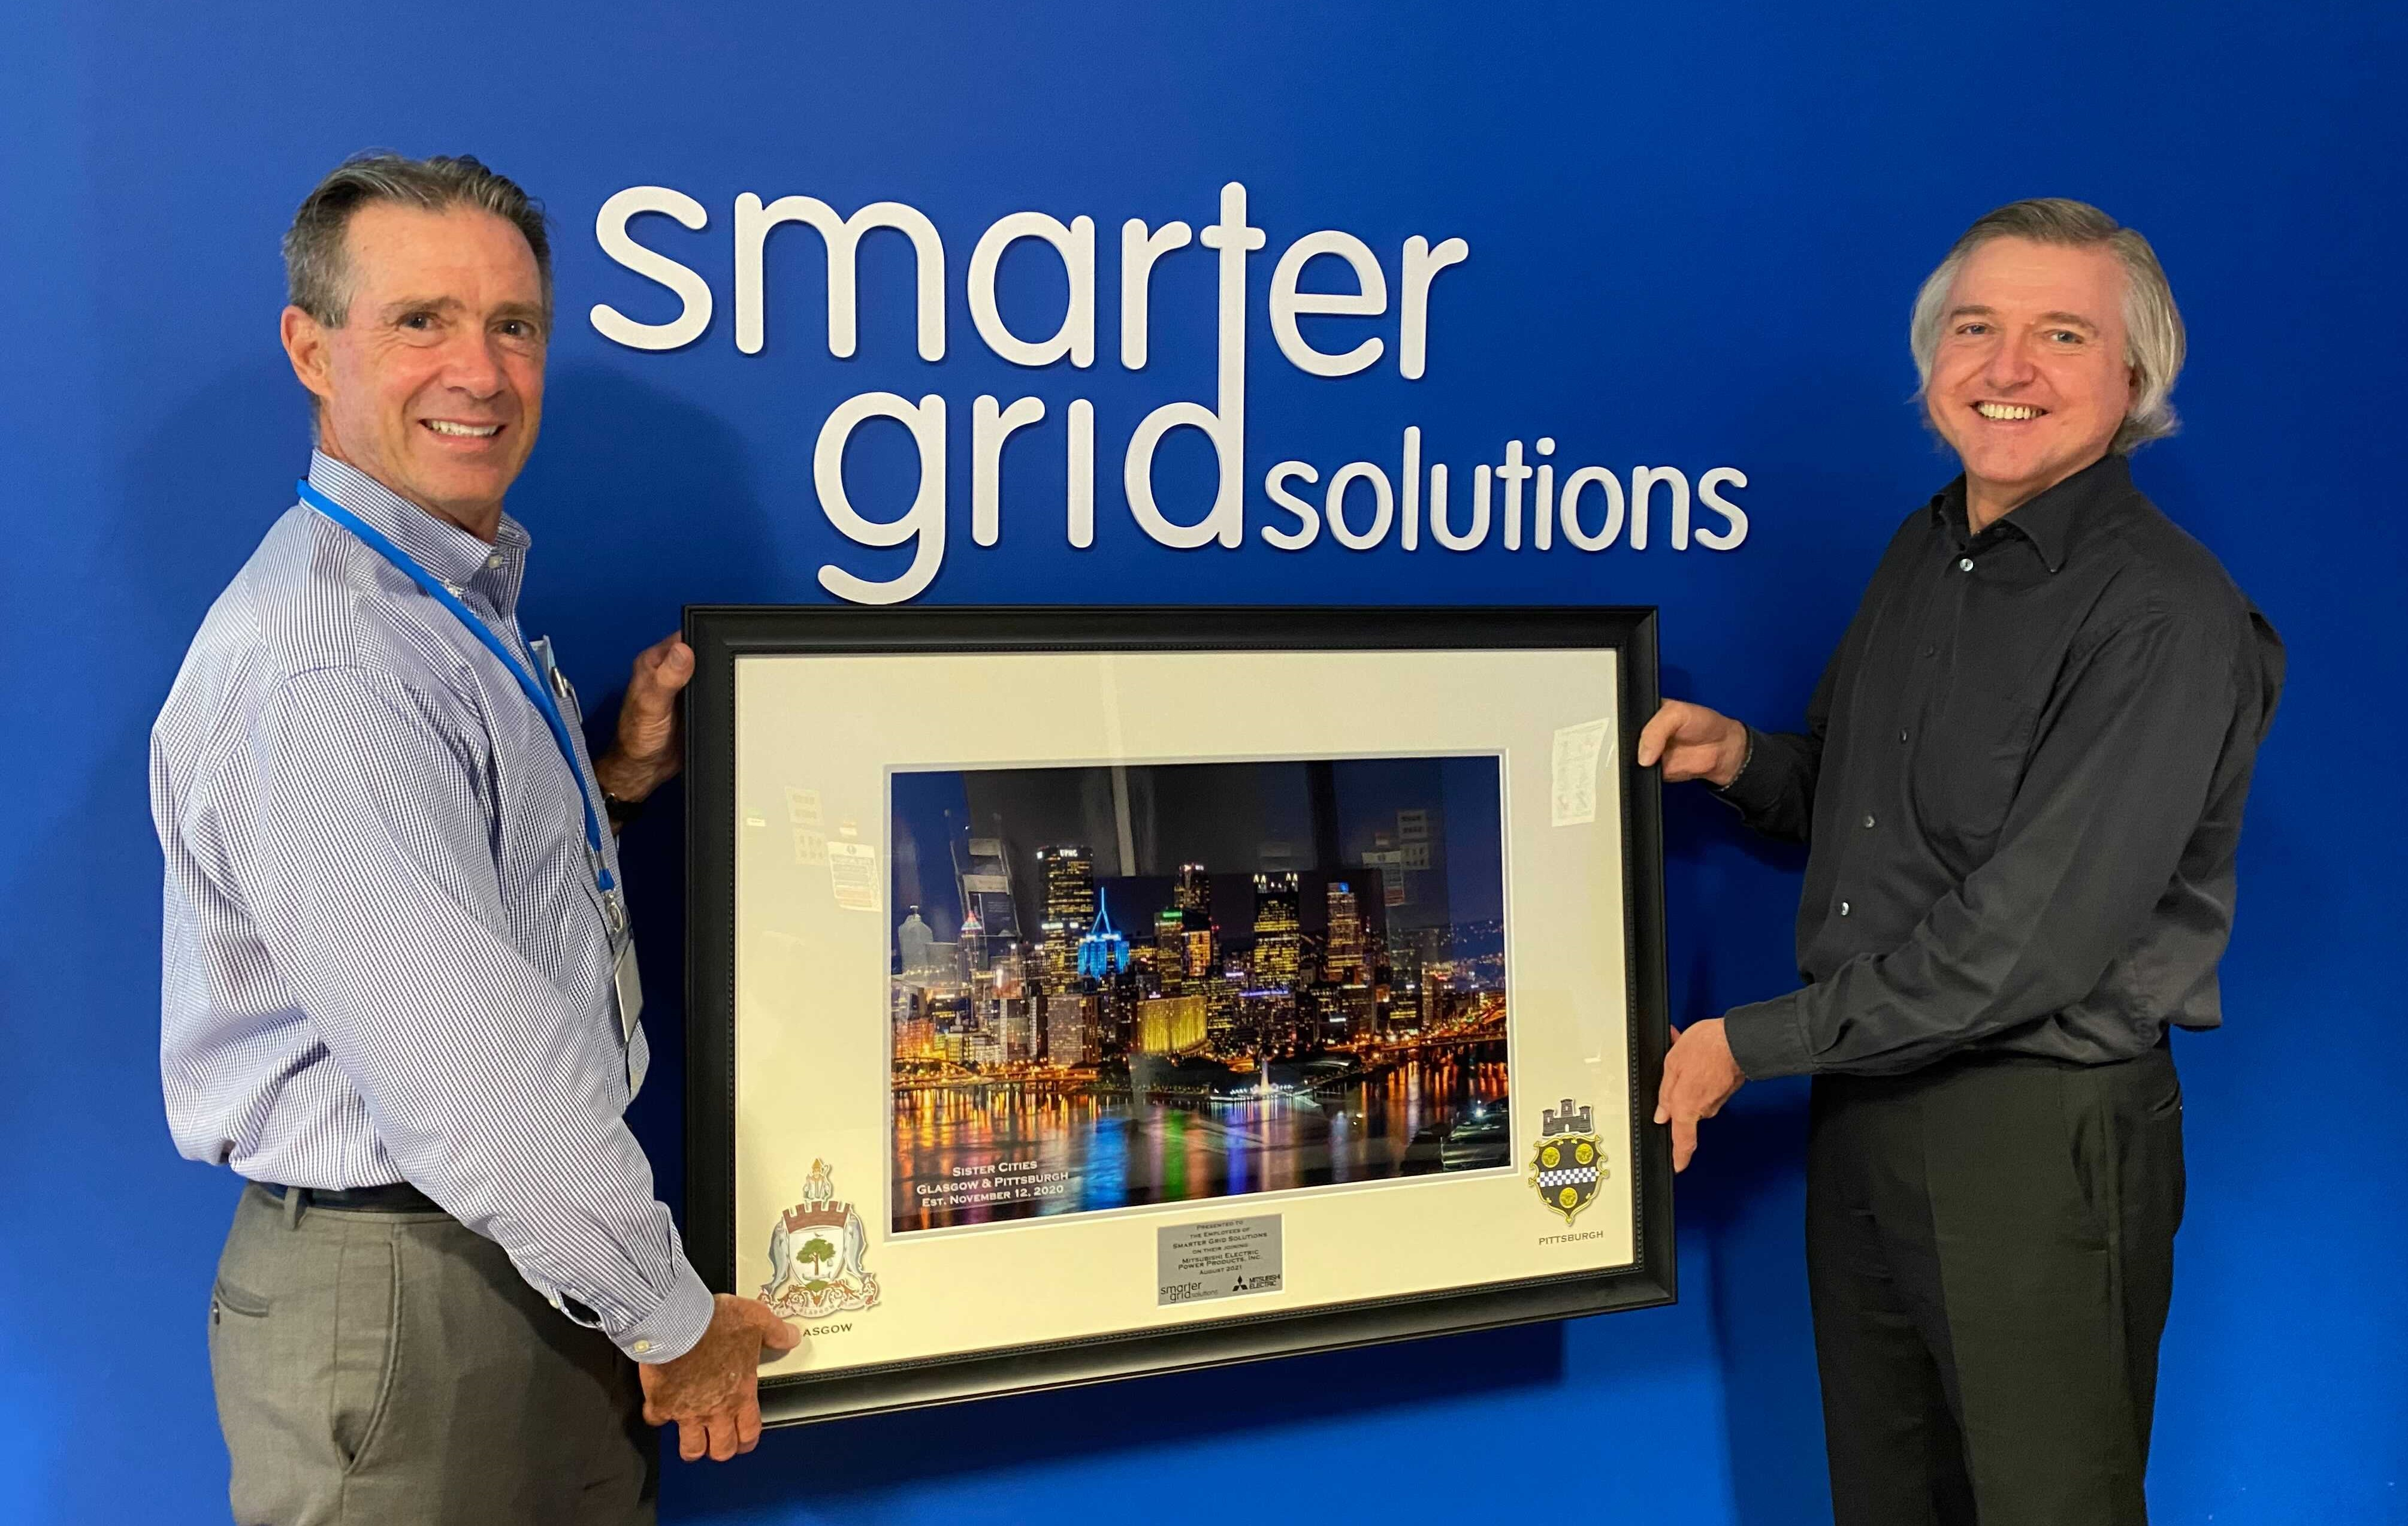 Brian Heery, MEPPI CEO and Brent Marshall, Smarter Grid Solutions CEO